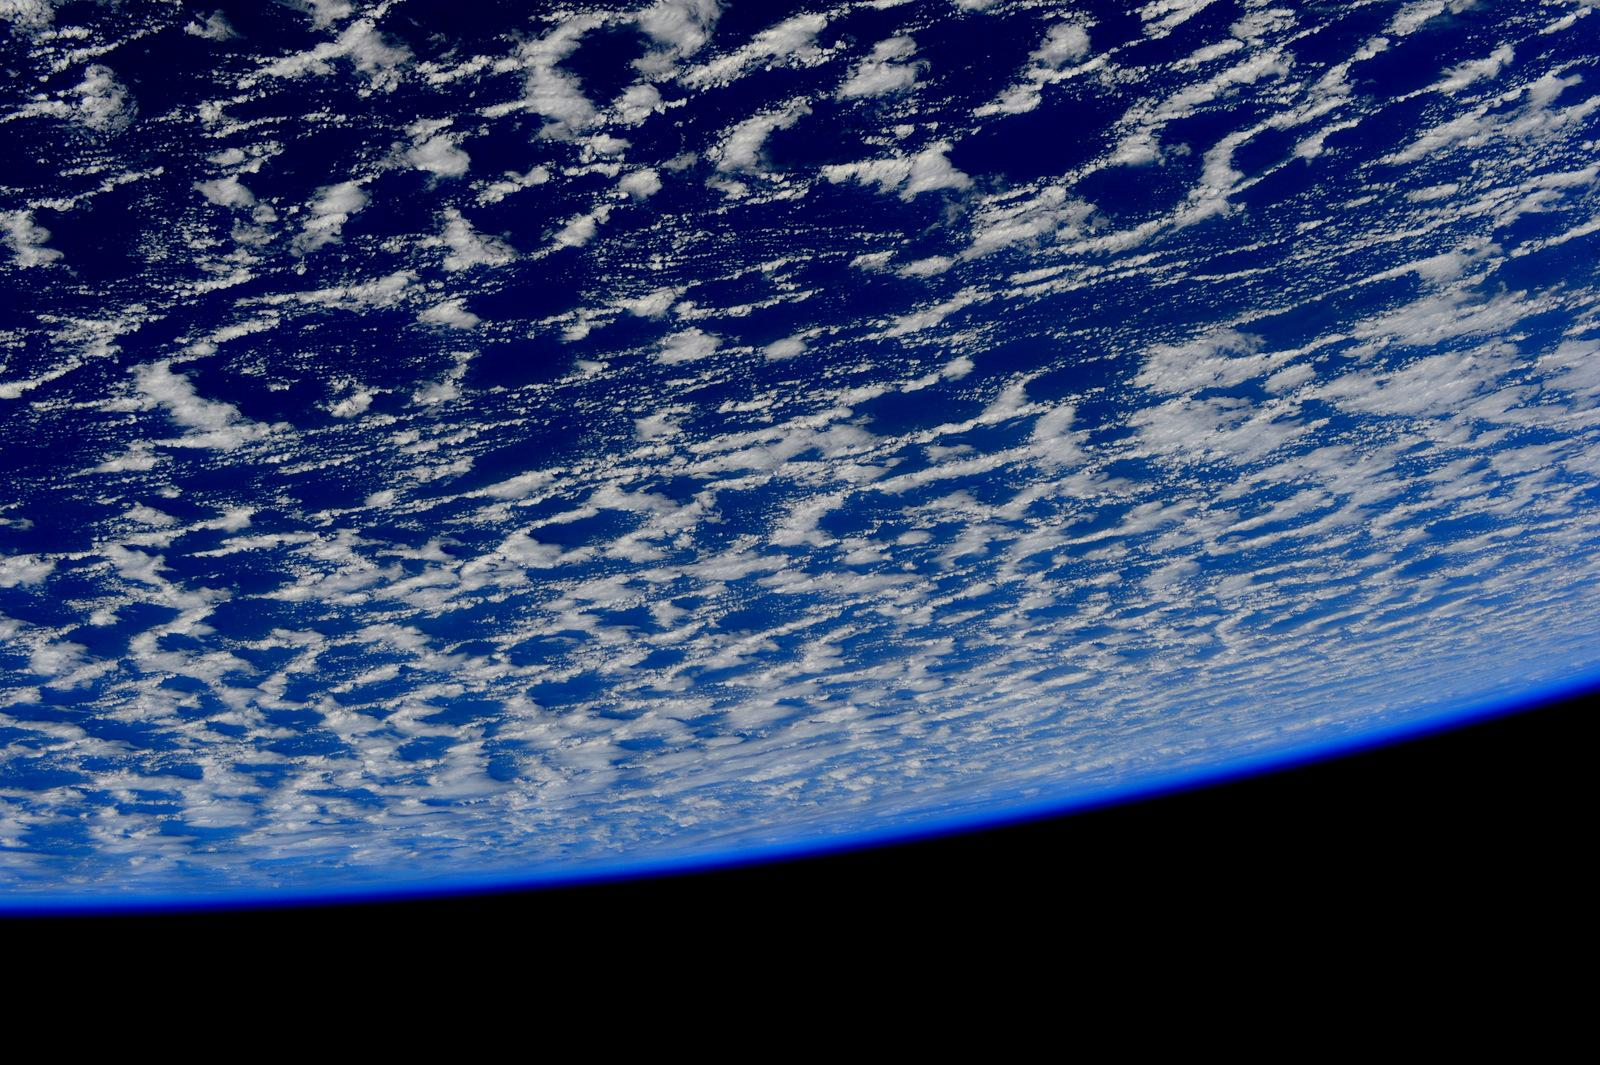 Good night from #space. Buona notte dallo spazio. http://t.co/w6cTThjOLm